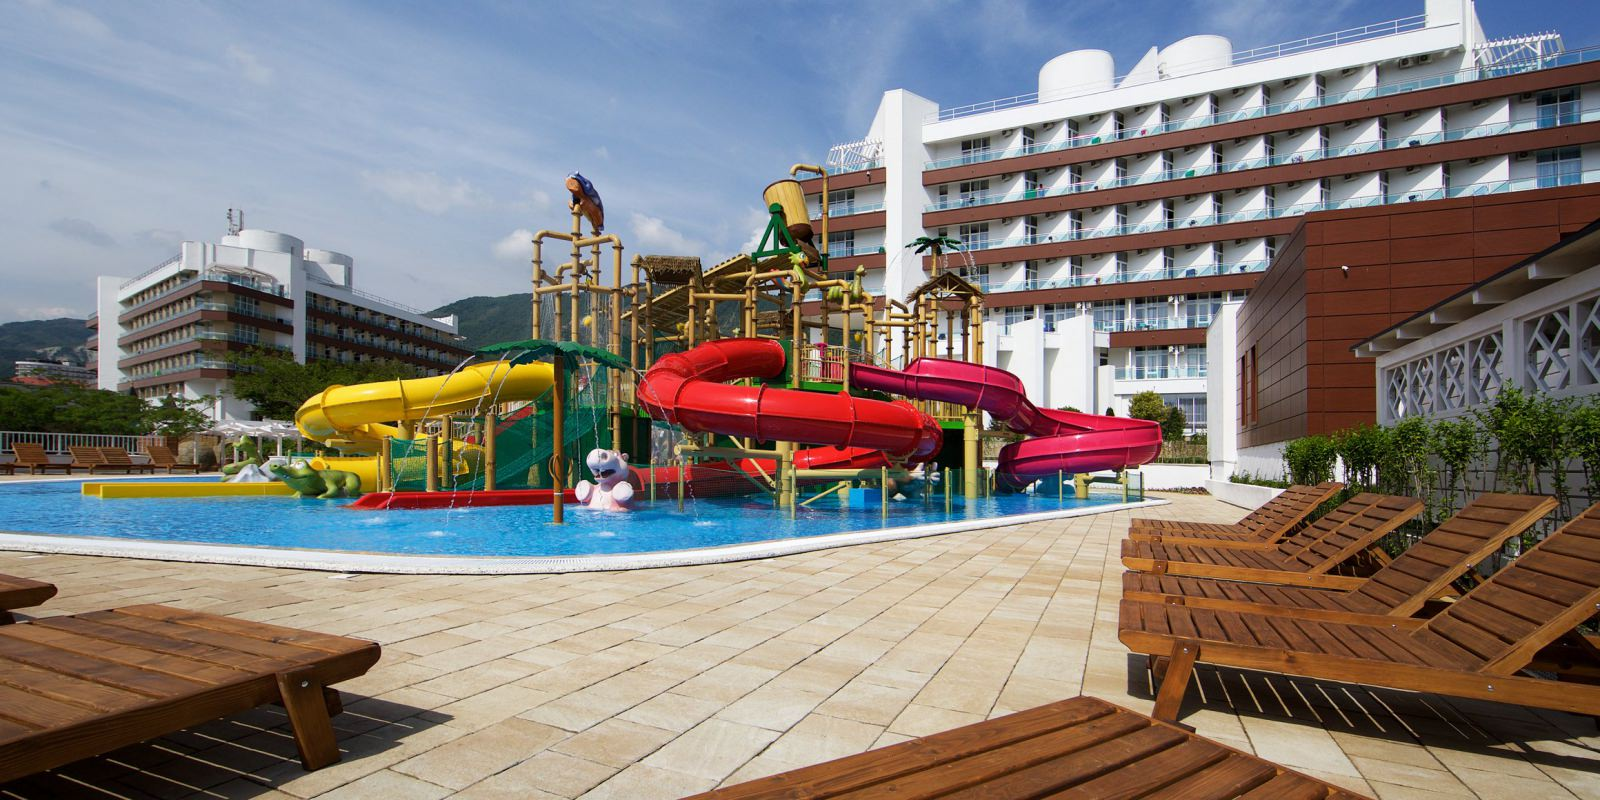 Водный комплекс Aquaplay - Отель «ALEAN FAMILY RESORT & SPA BIARRITZ 4* / Биарриц» (бывш. «Сосновая роща»)